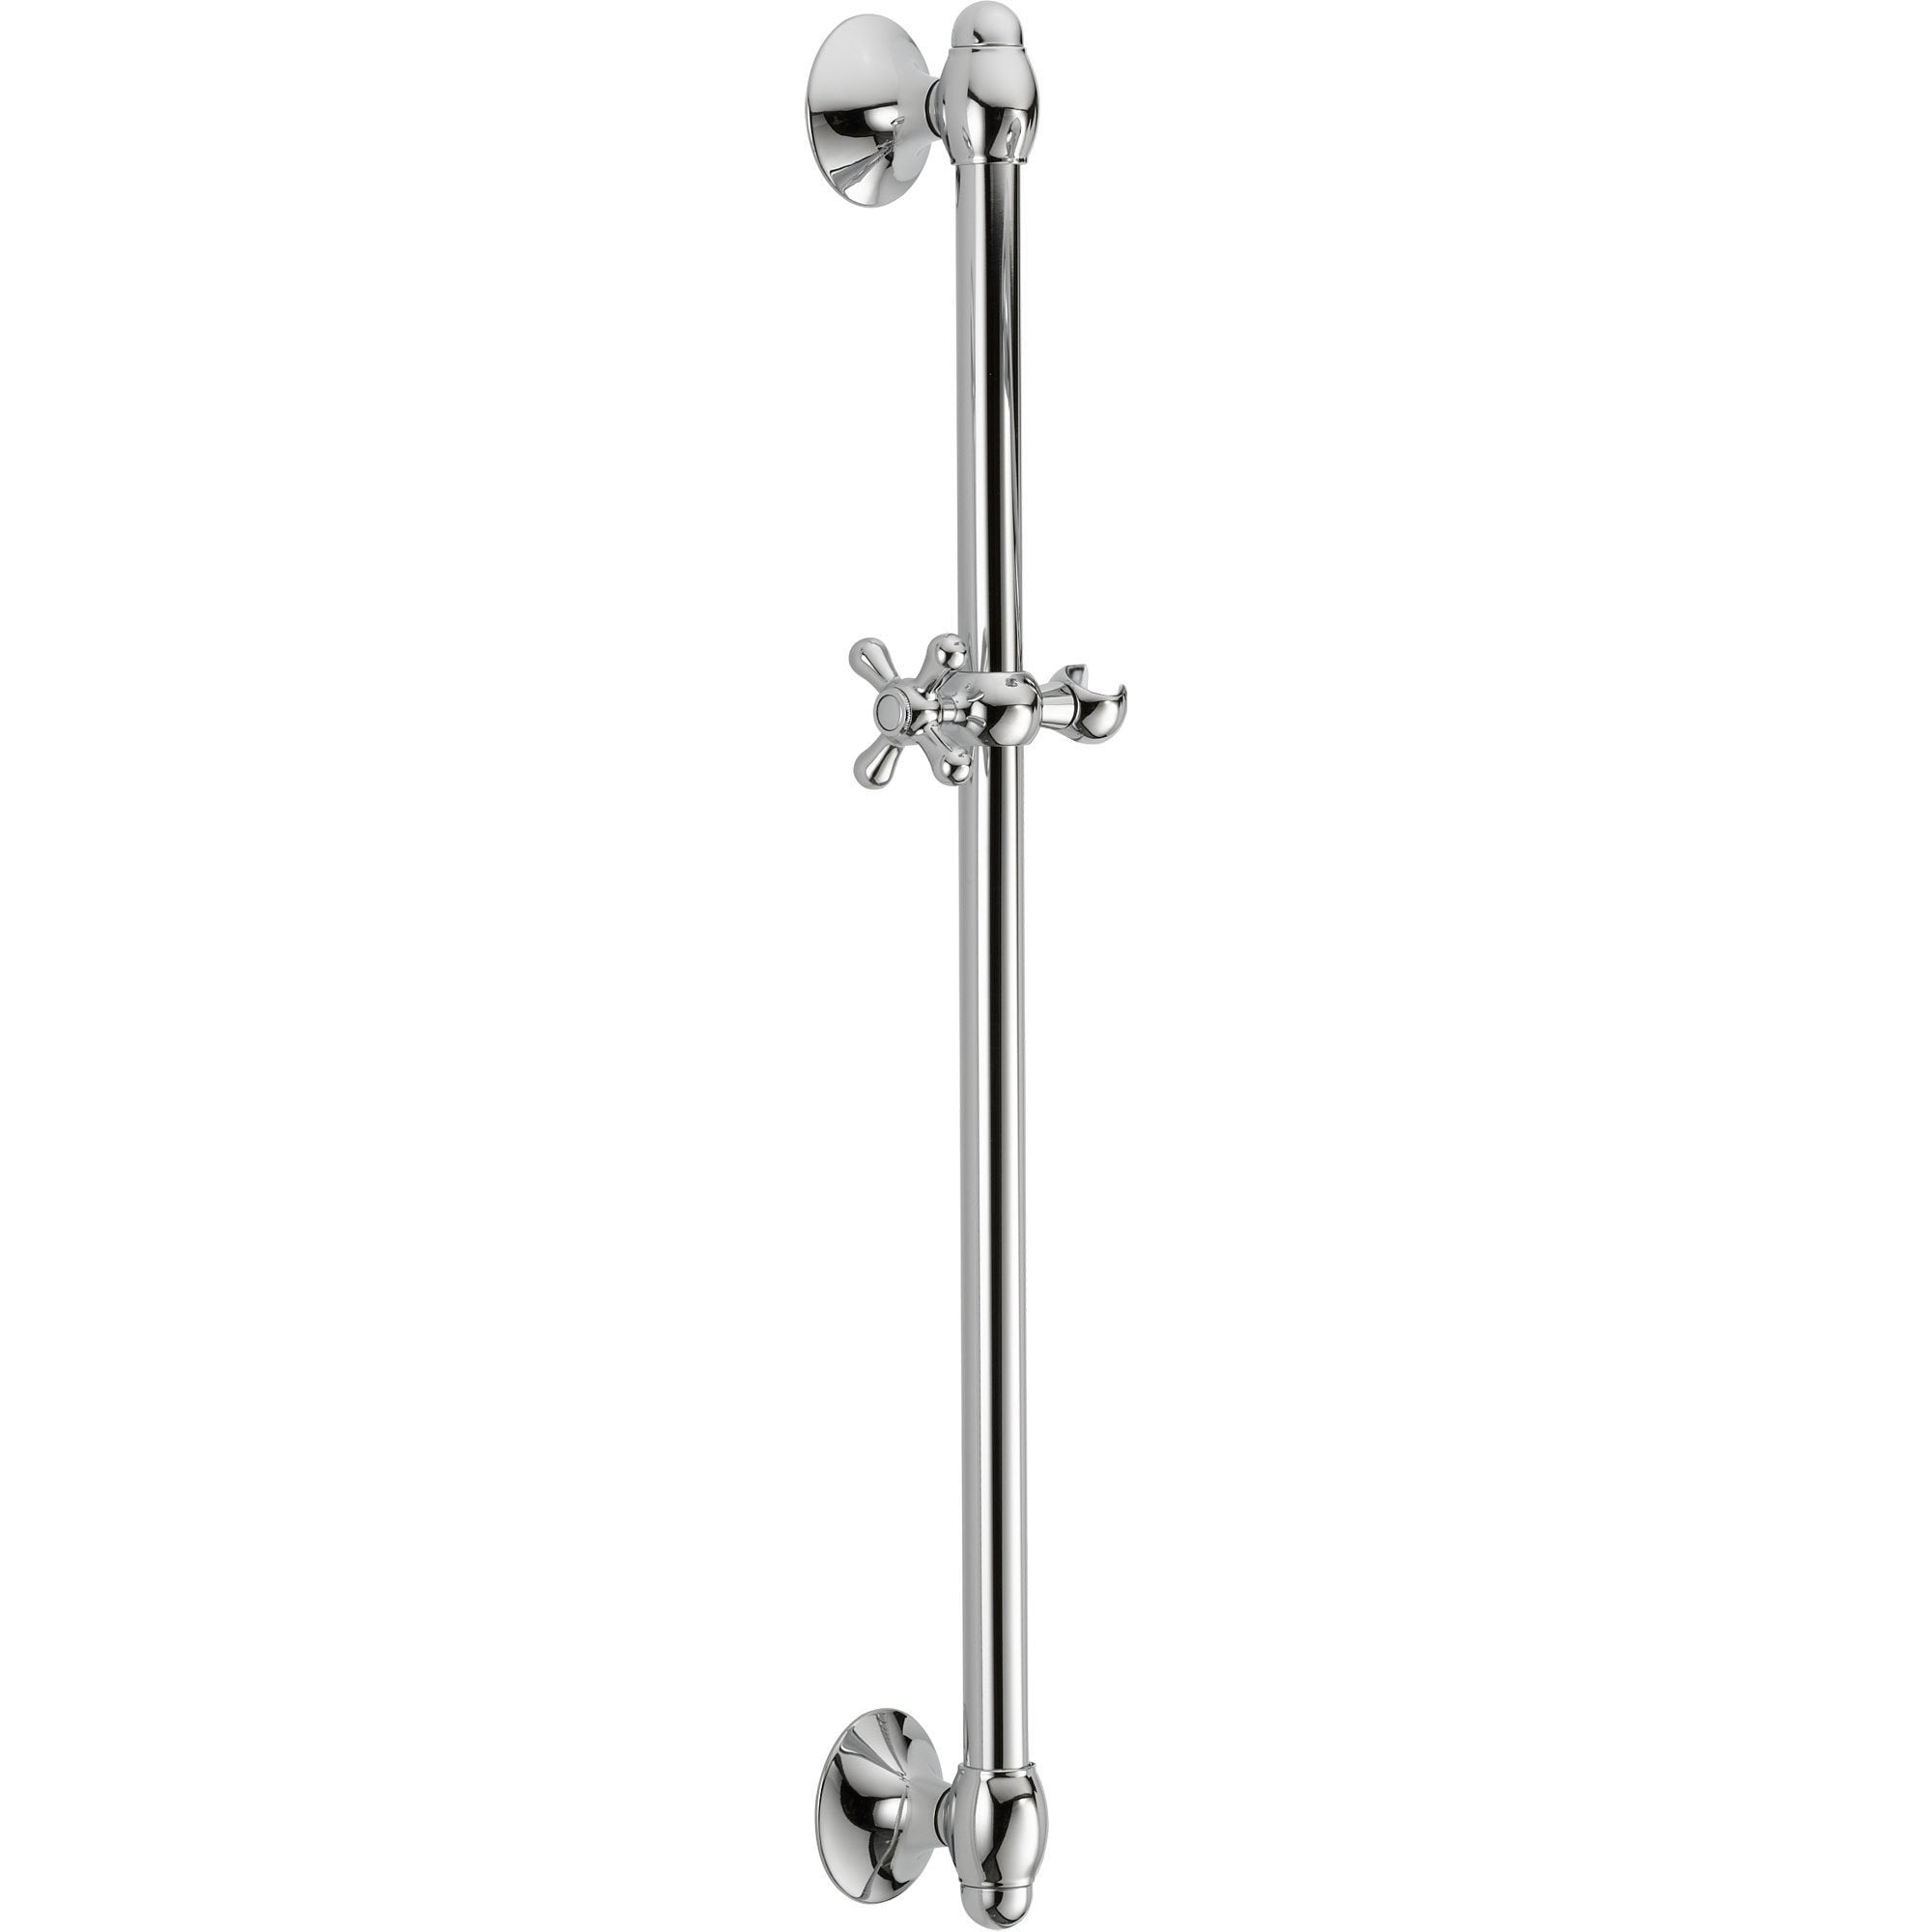 Delta 29 inch Adjustable Wall Mount Slide Bar for Hand Shower in Chrome 561067